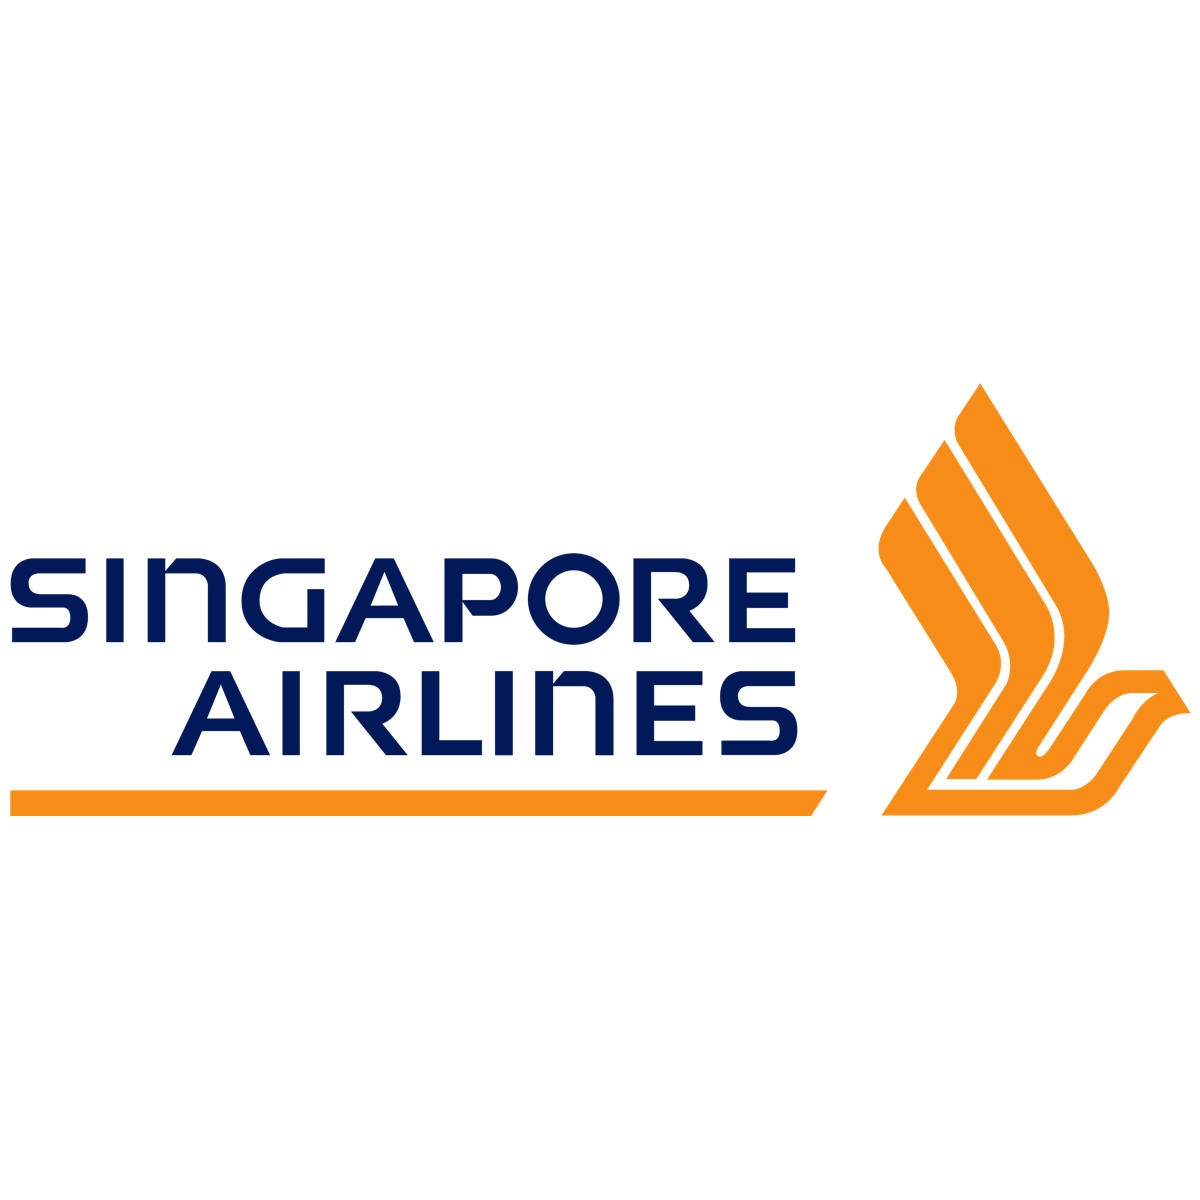 Singapore Airlines (SIA SP) - UOB Kay Hian 2017-05-05: 4QFY17 Results Preview ~ Core Net Profit To Rise 25% yoy